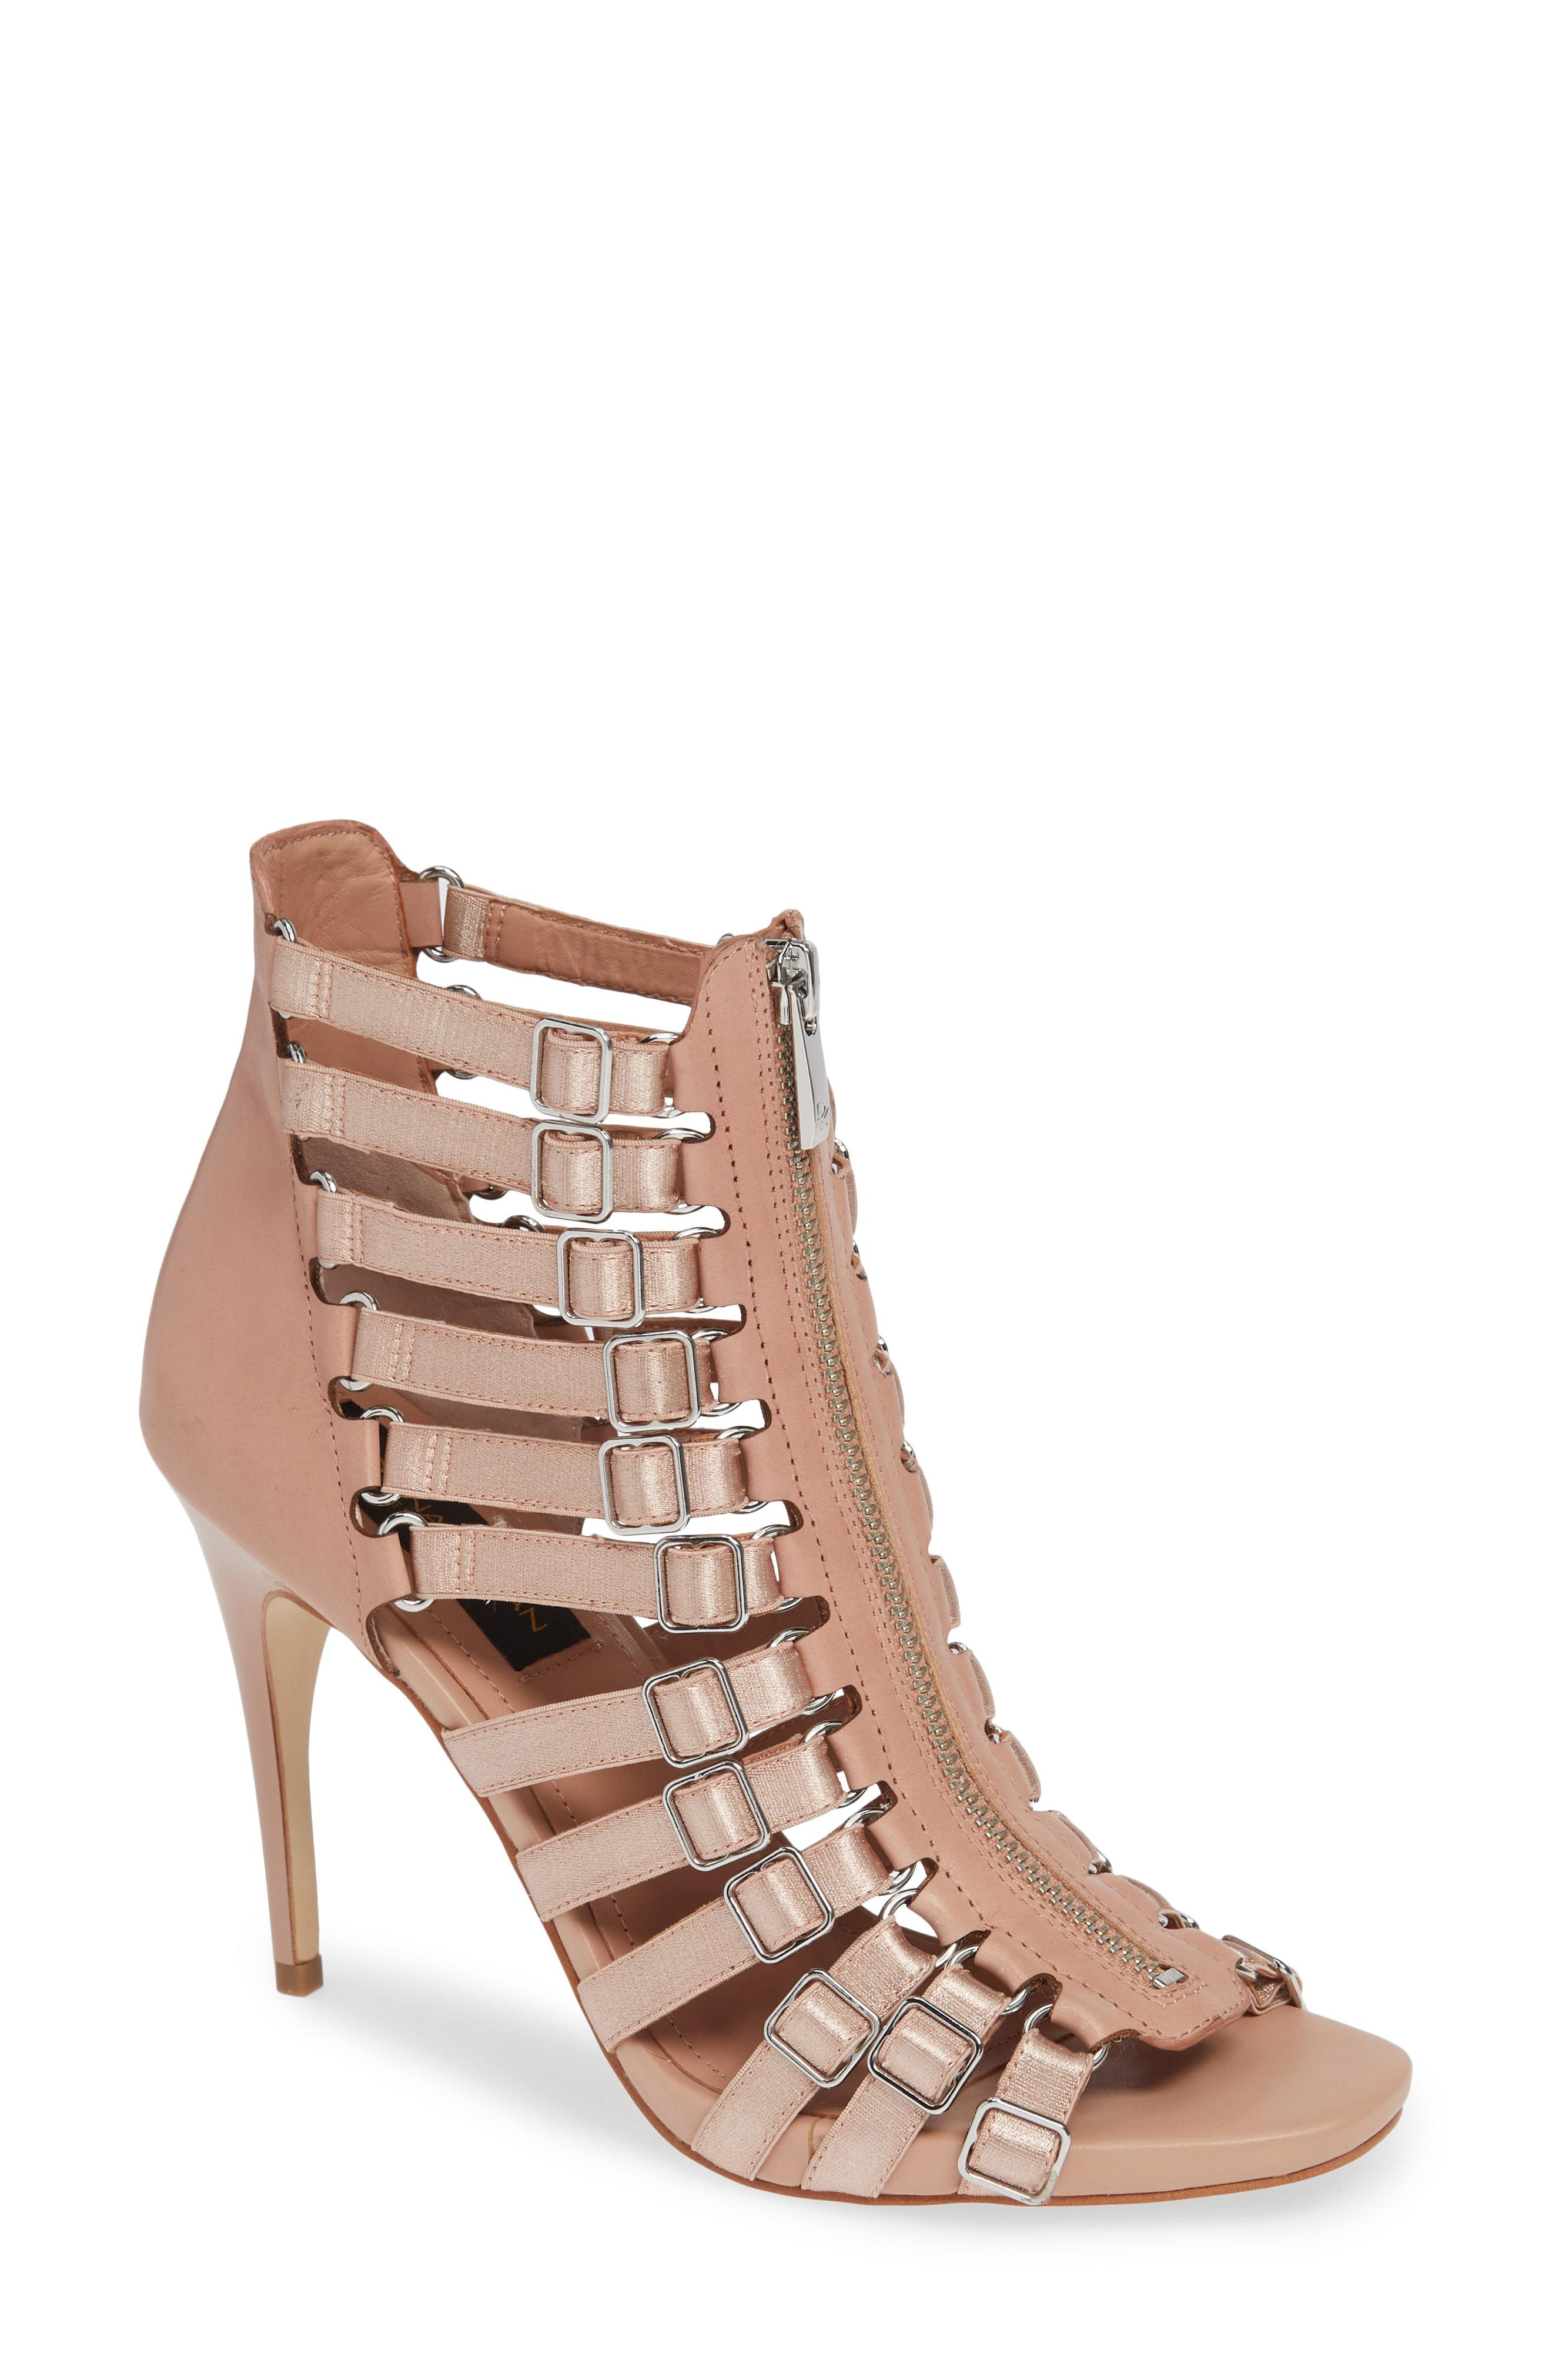 f5f5506e43e0 Lyst - Donna Karan Donna Karan Kat High Sandal in Brown